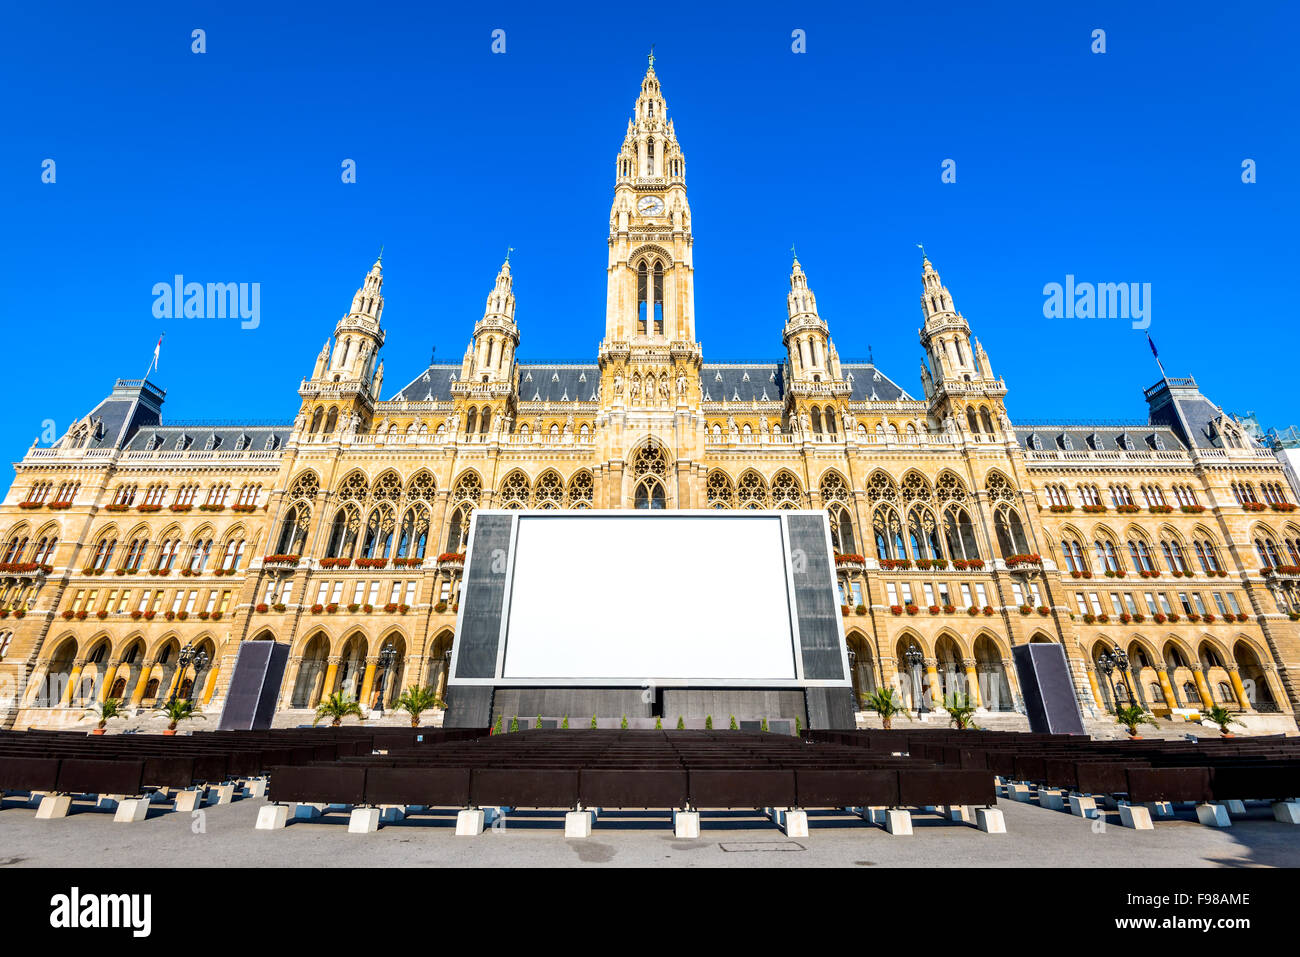 Vienna, Austria. The outside of the Rathaus in Vienna which serves as the Town Hall. Stock Photo